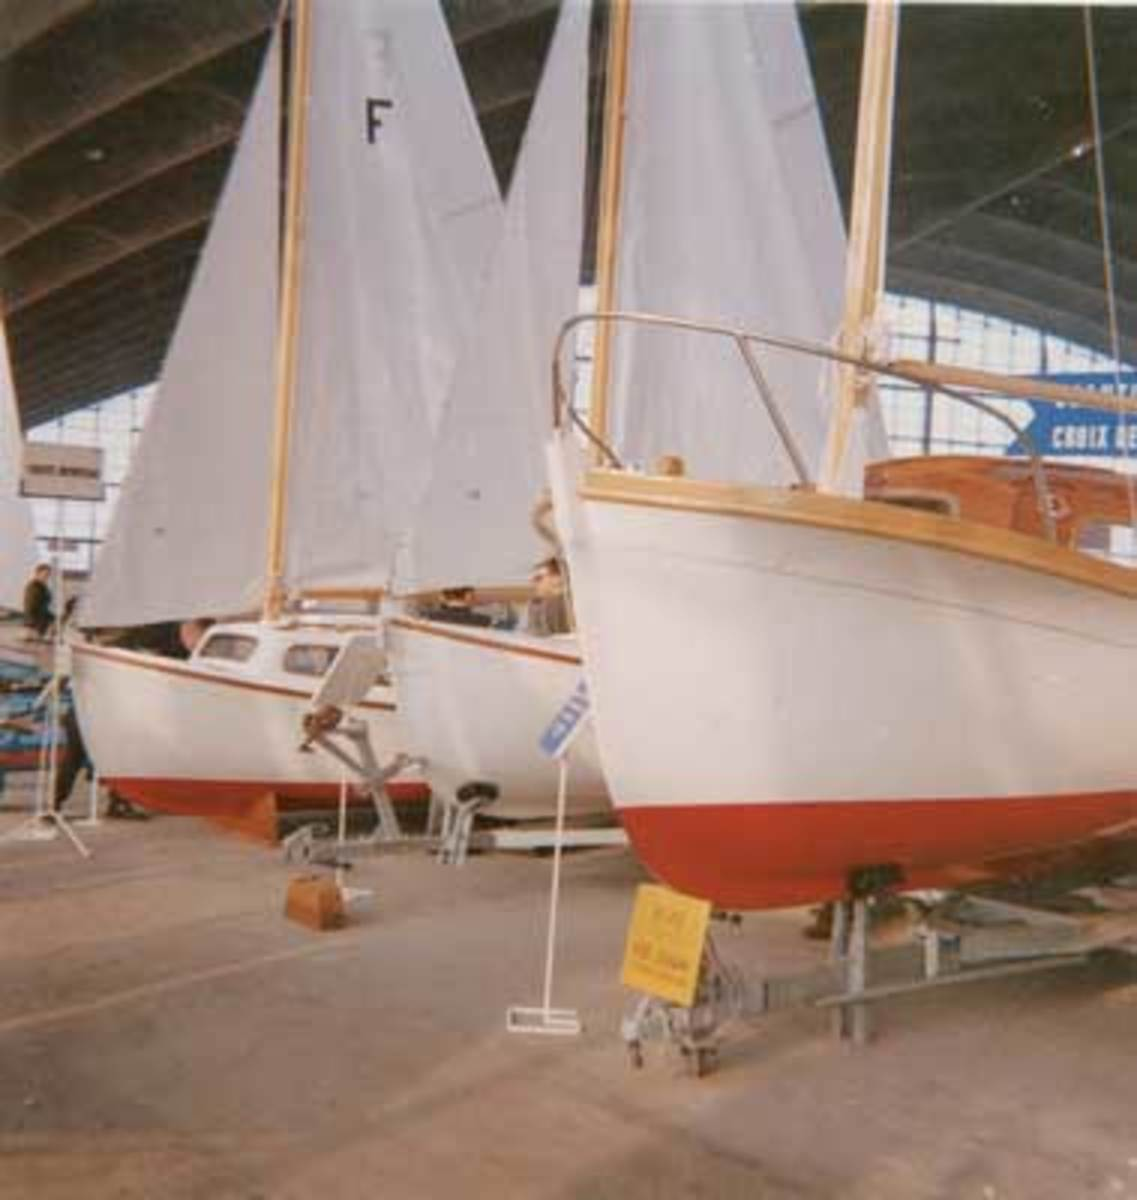 At the Beneteau yard